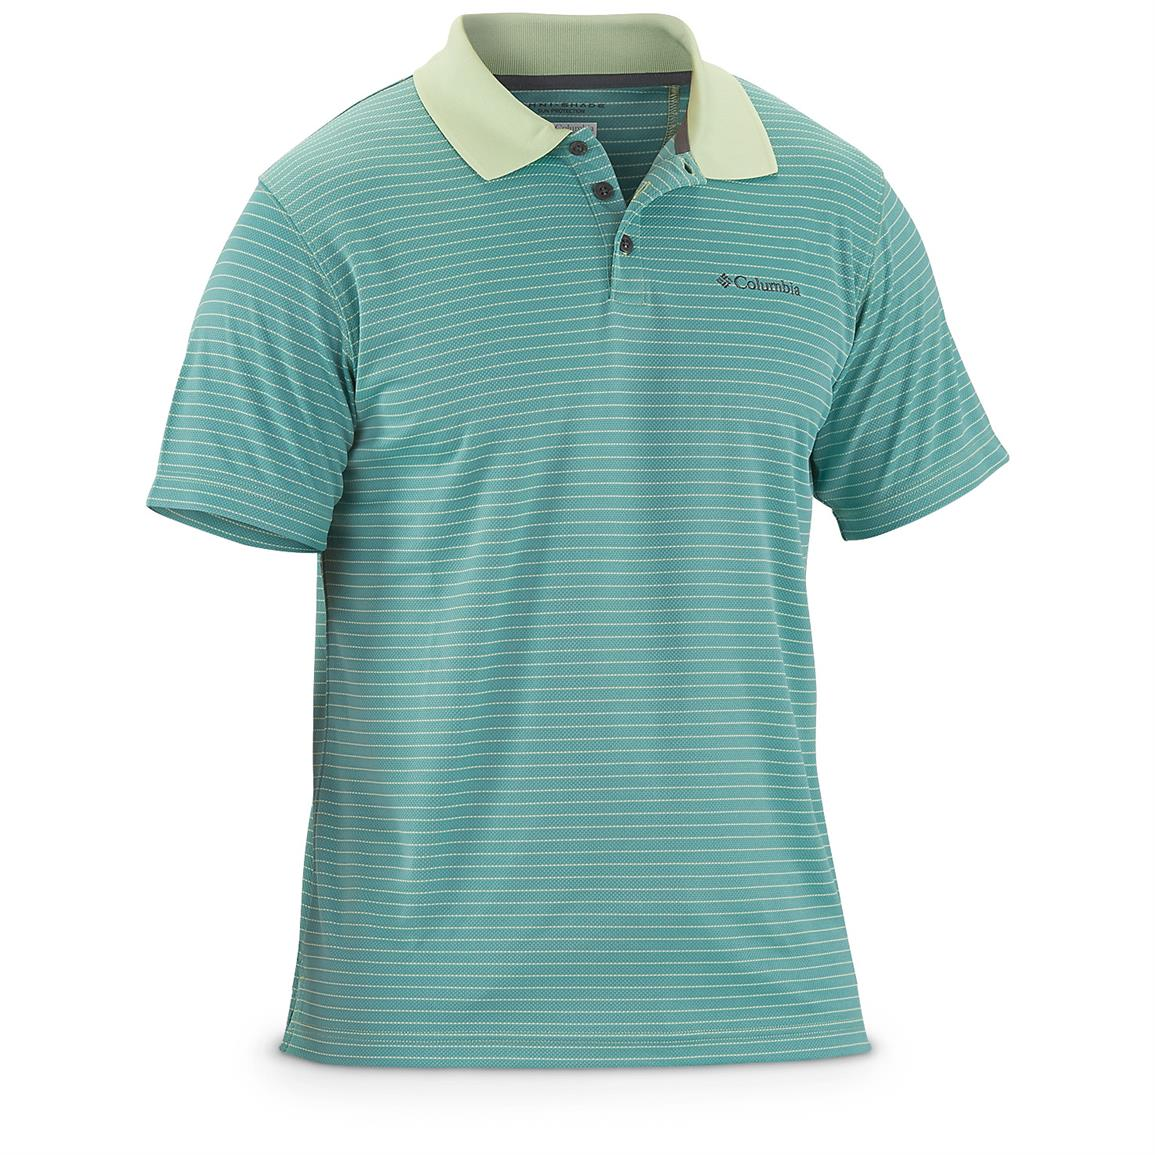 Columbia Men's Sportswear Utilizer Stripe Polo III Shirt, Nappa Green